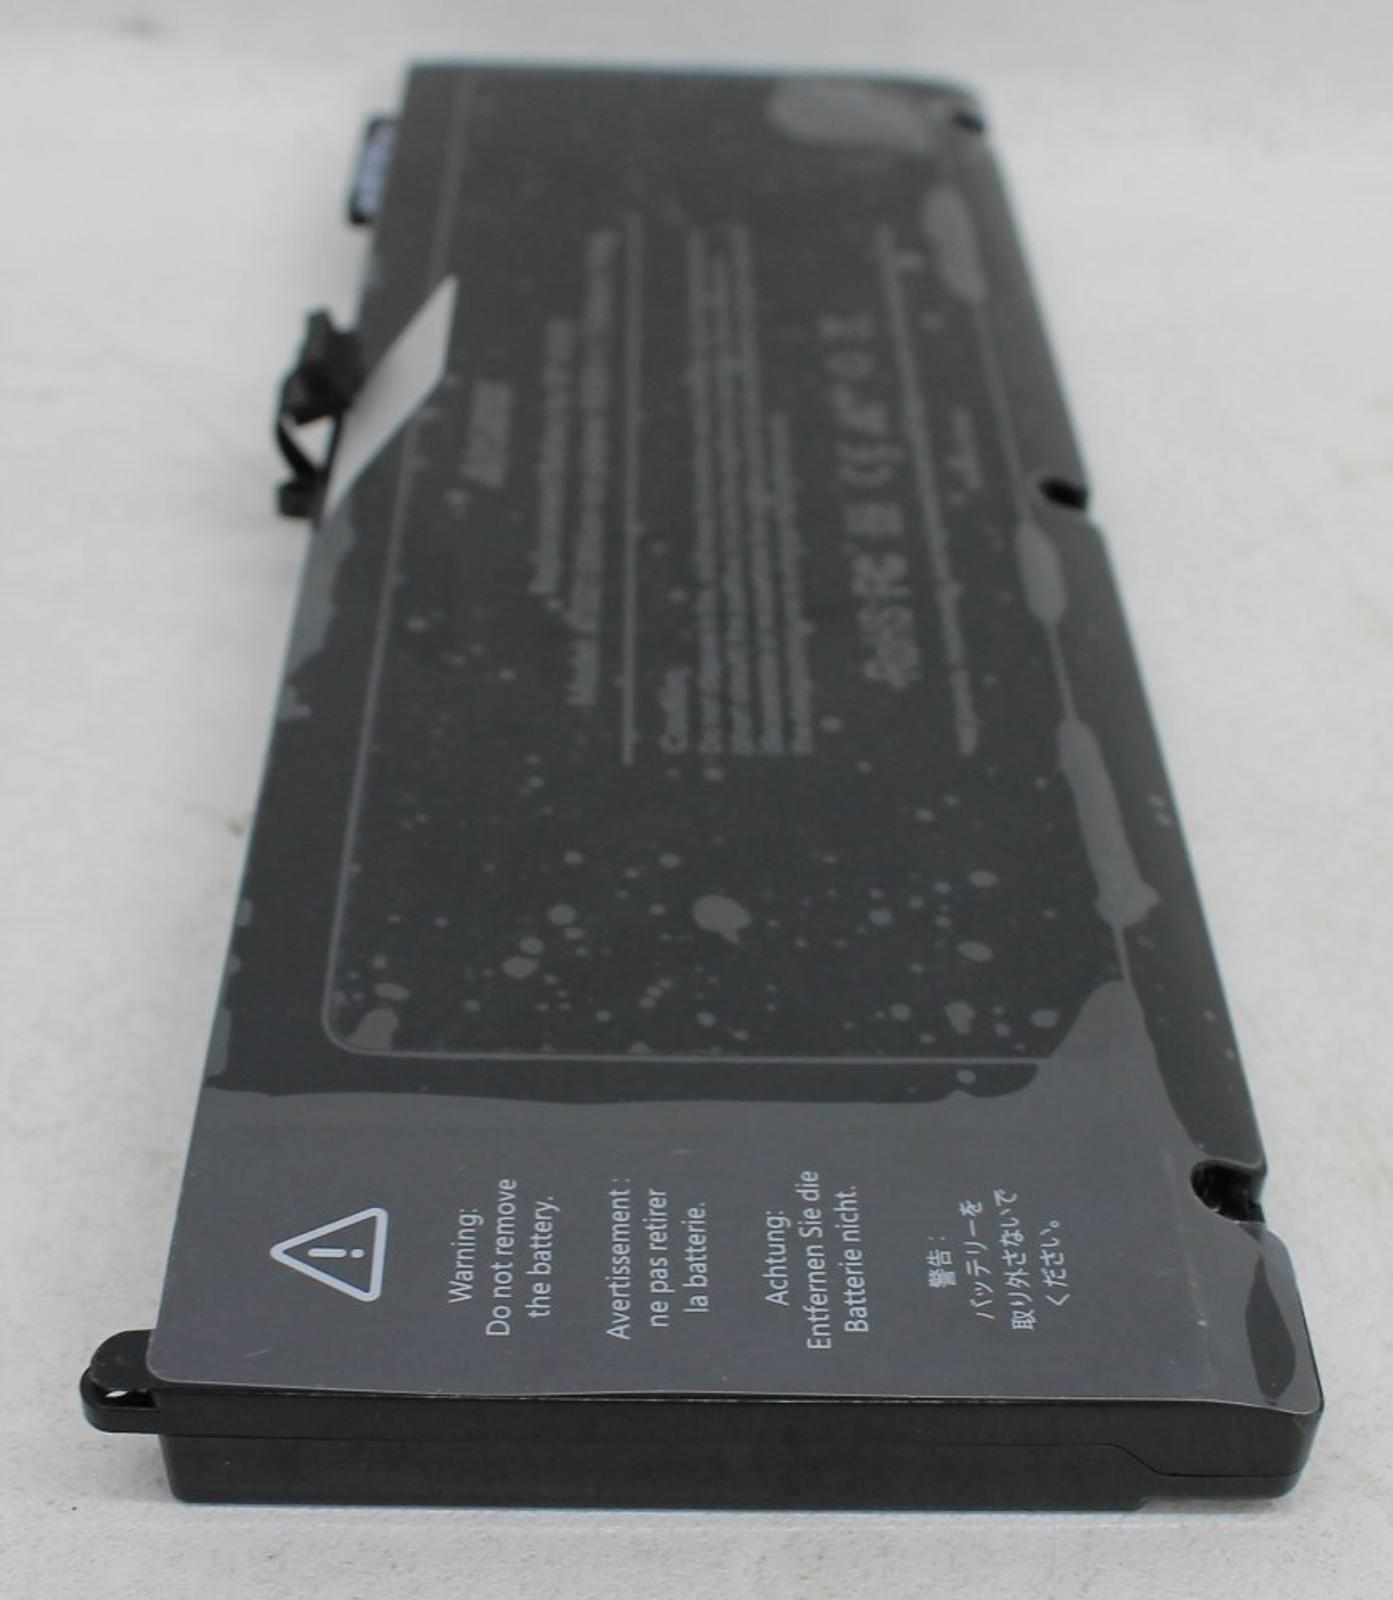 ANSANOR-10-95V-7200mAh-A1321-Type-Battery-For-Mid-2009-2010-MacBook-Pro-15-034-BNIB miniatuur 6